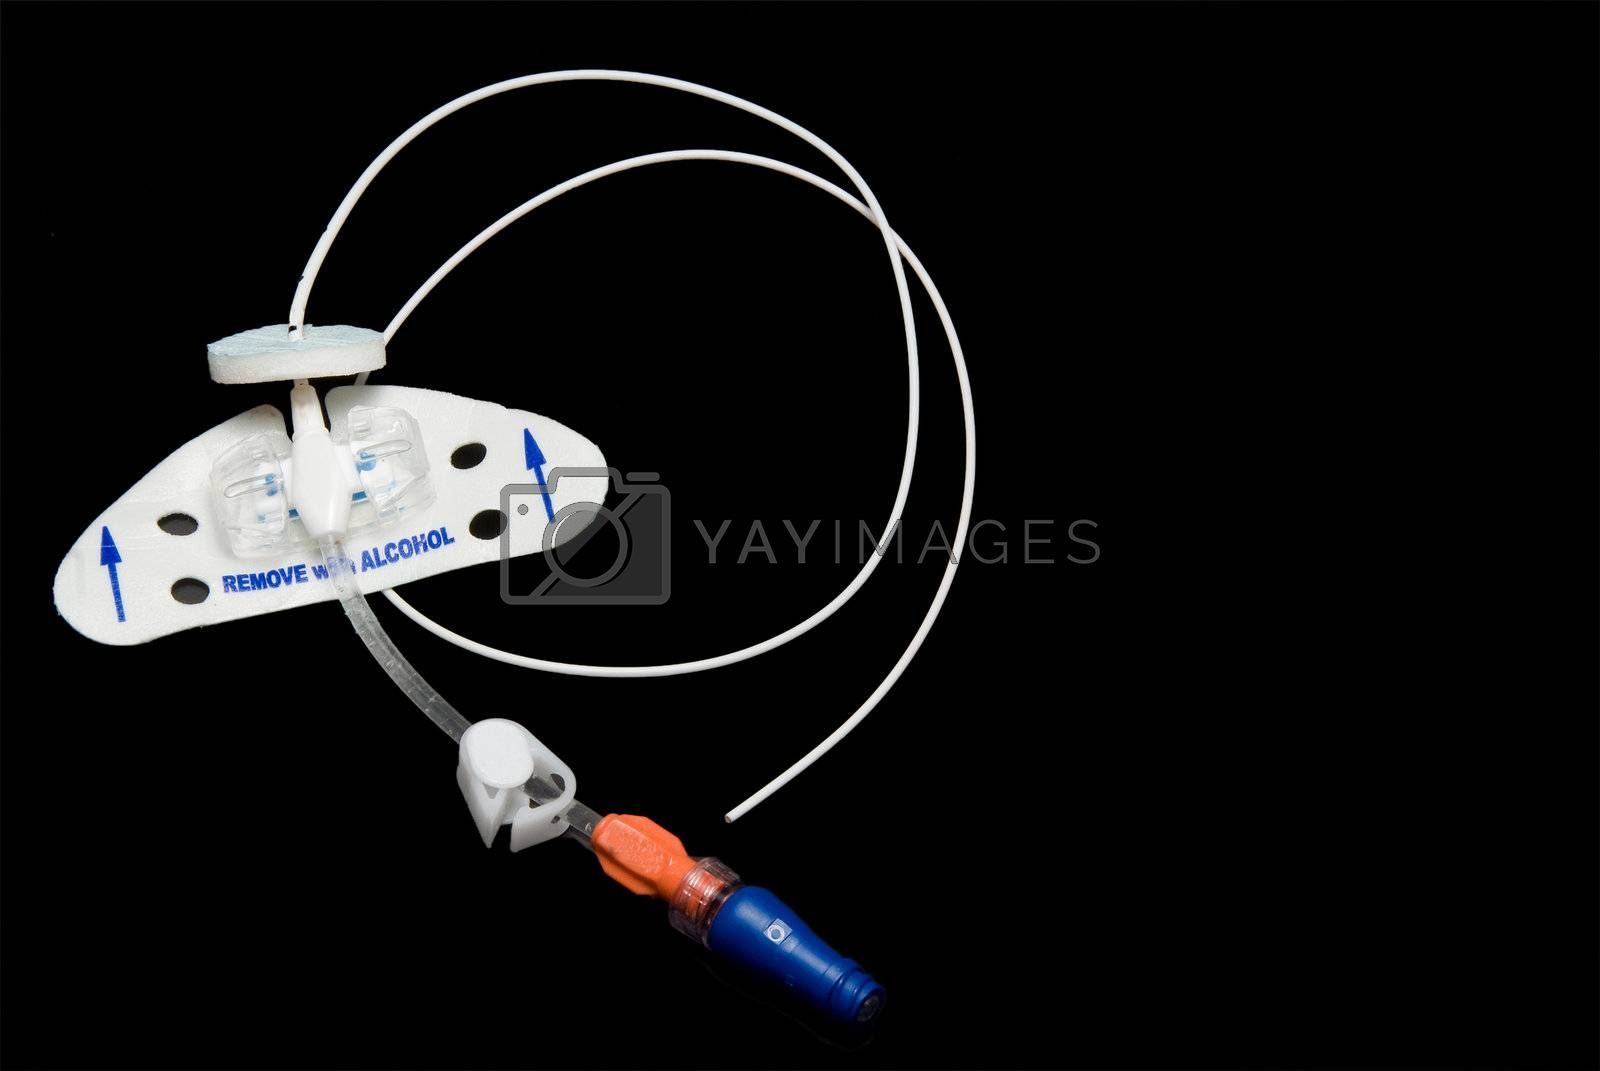 A Peripherally Inserted Central Catheter better known as a PICC line.